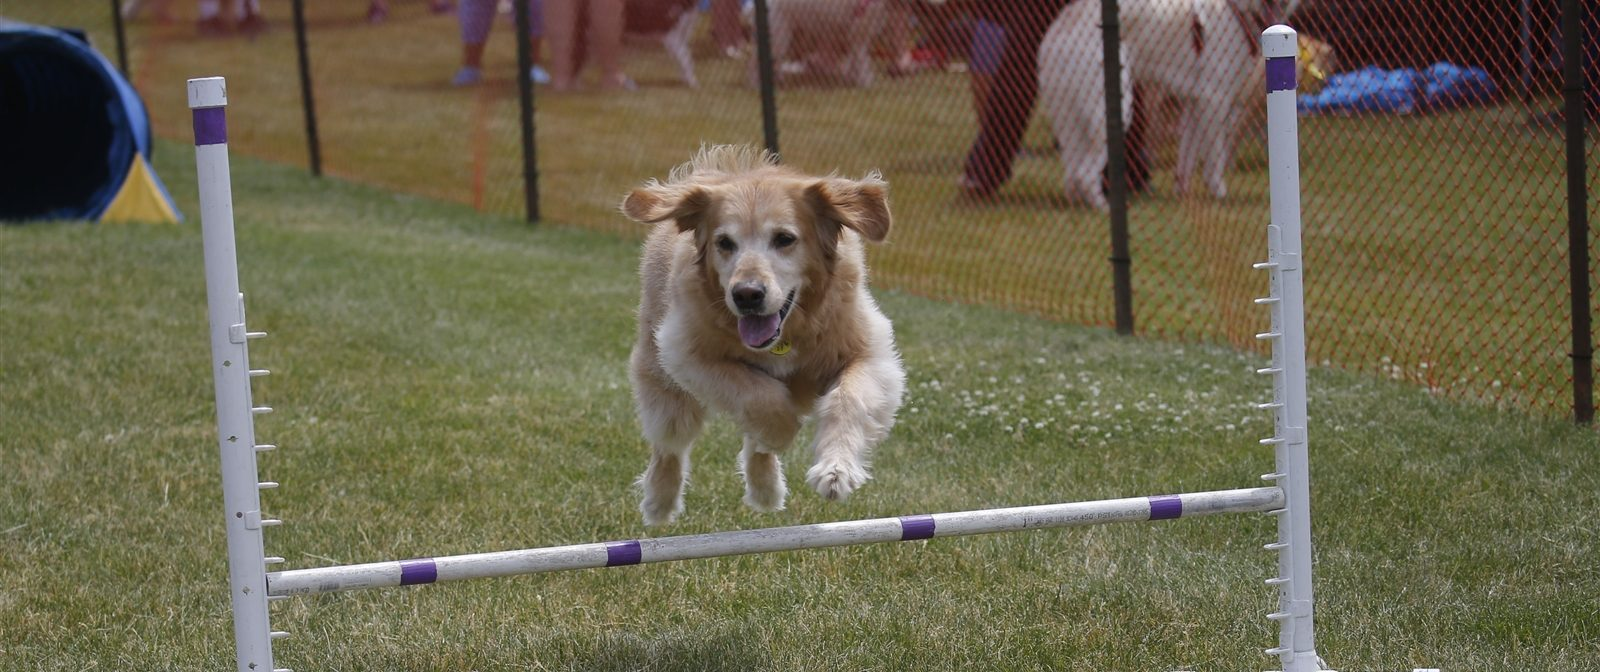 Bring your dog to a few events this June catered to them. (Robert Kirkham/Buffalo News)